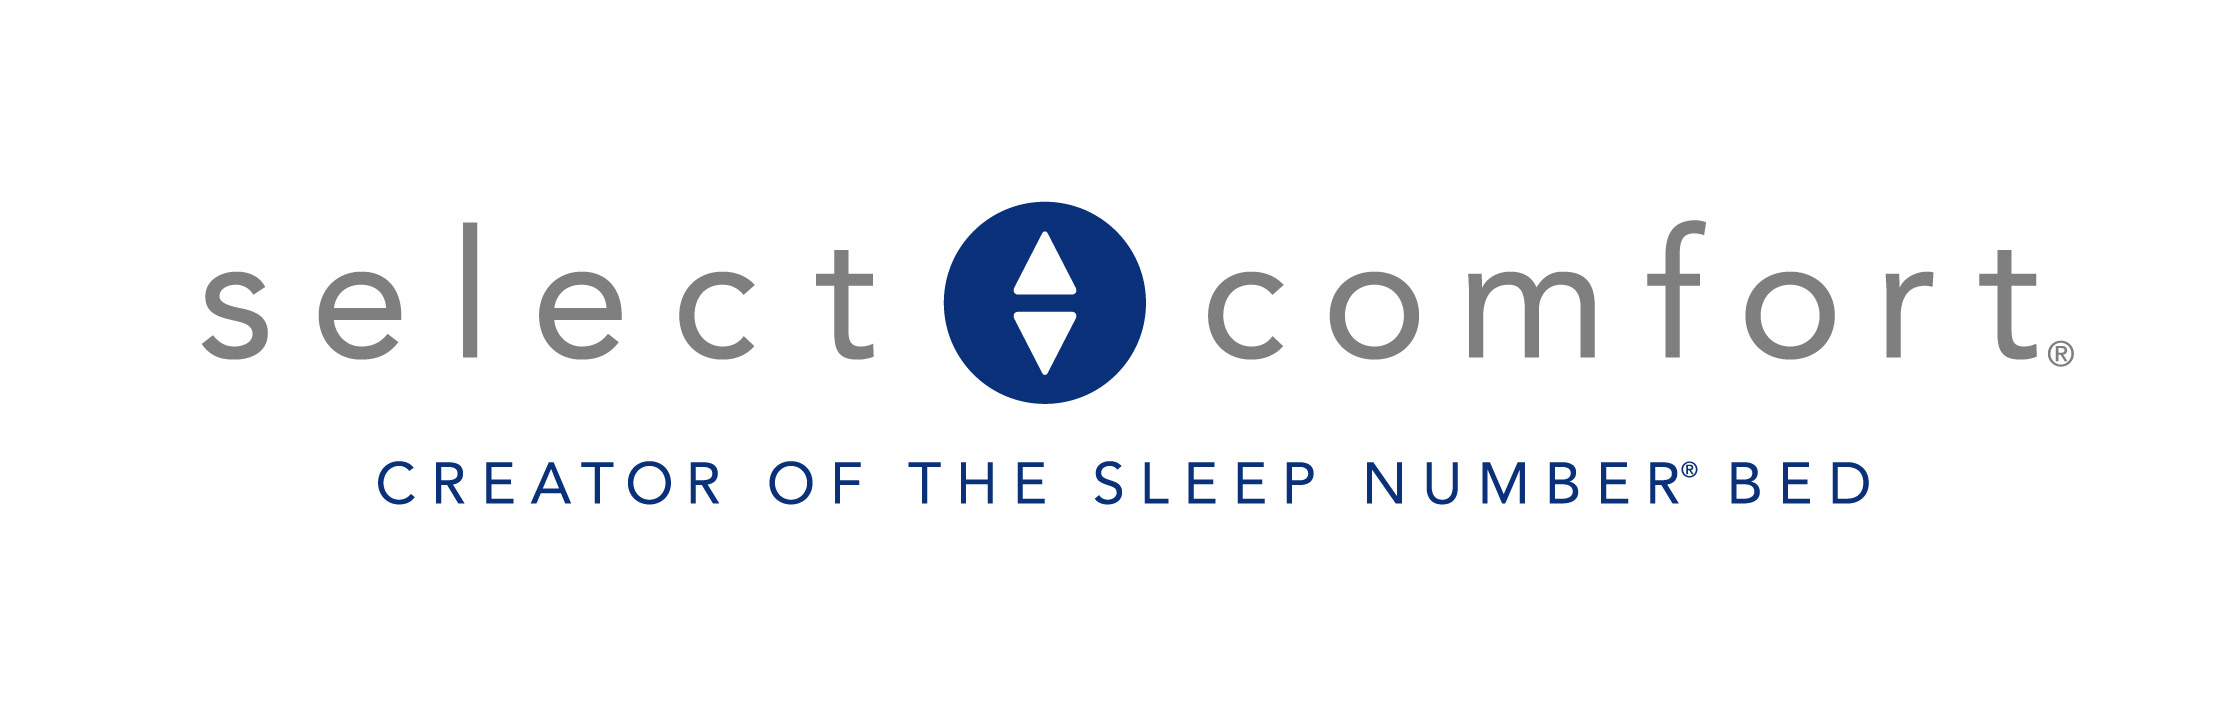 Select Comfort- History and the Sleep Number bed series